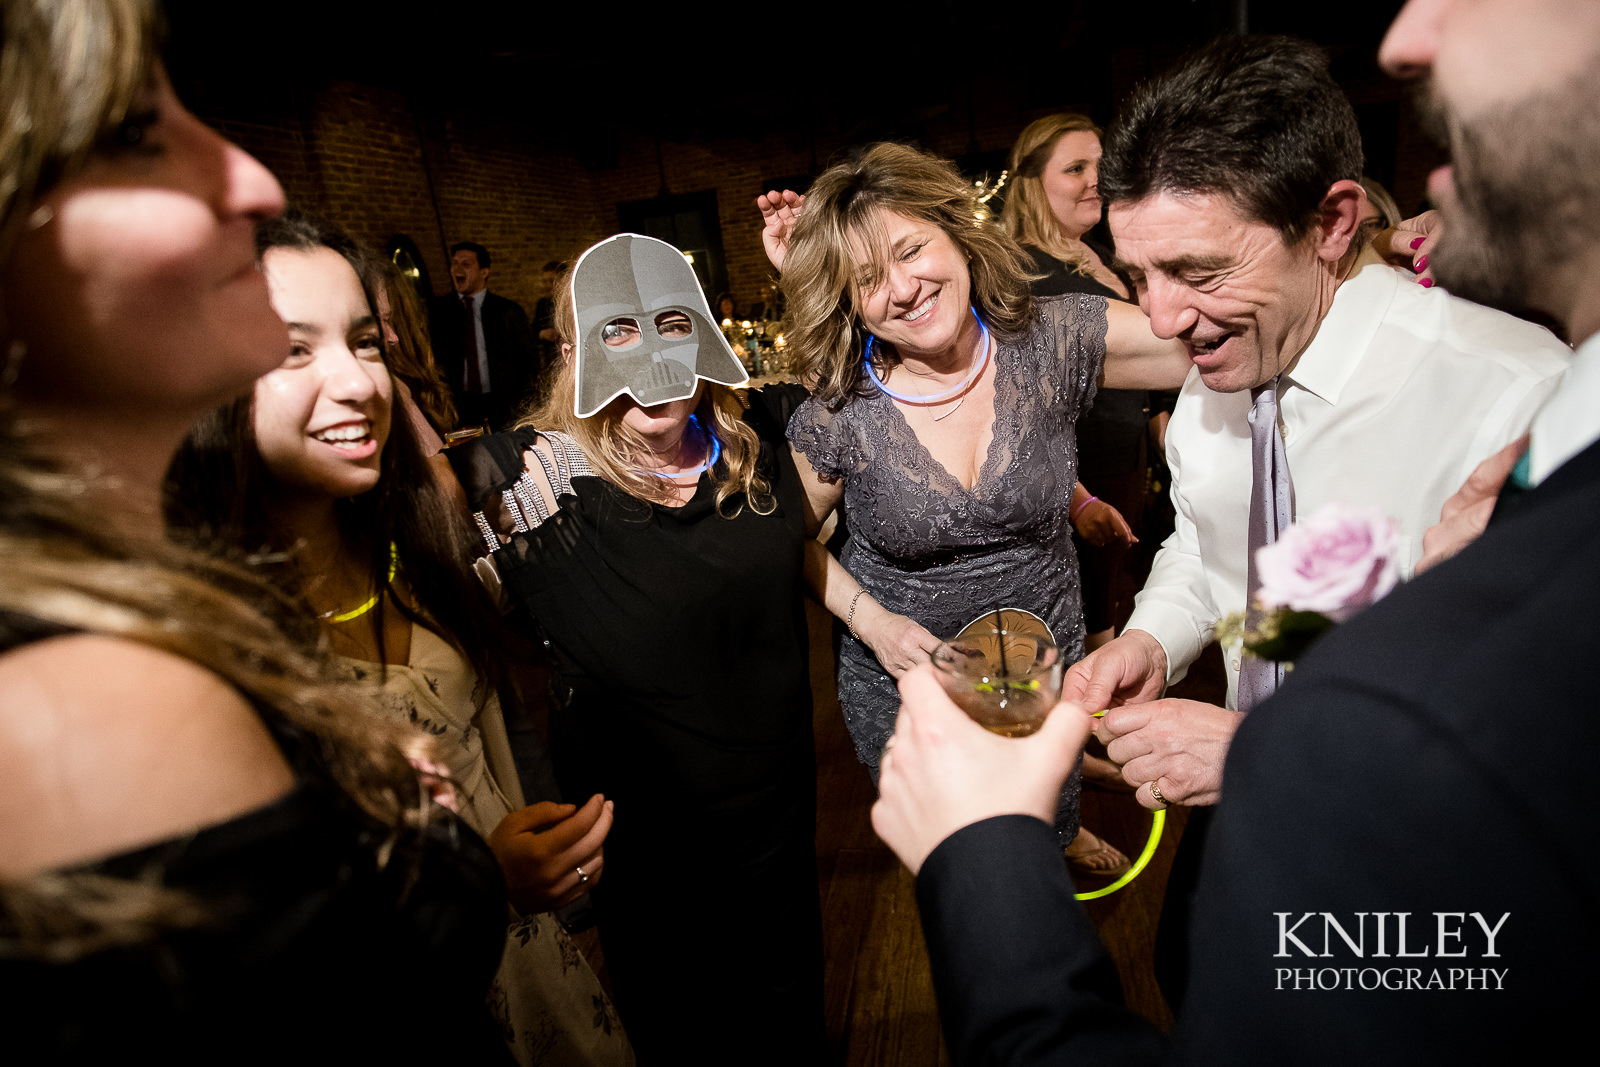 56-Pearl-St-Grill-Wedding-Reception-Buffalo-NY-Kniley-Photography-Star-Wars-May-the-4th.jpg